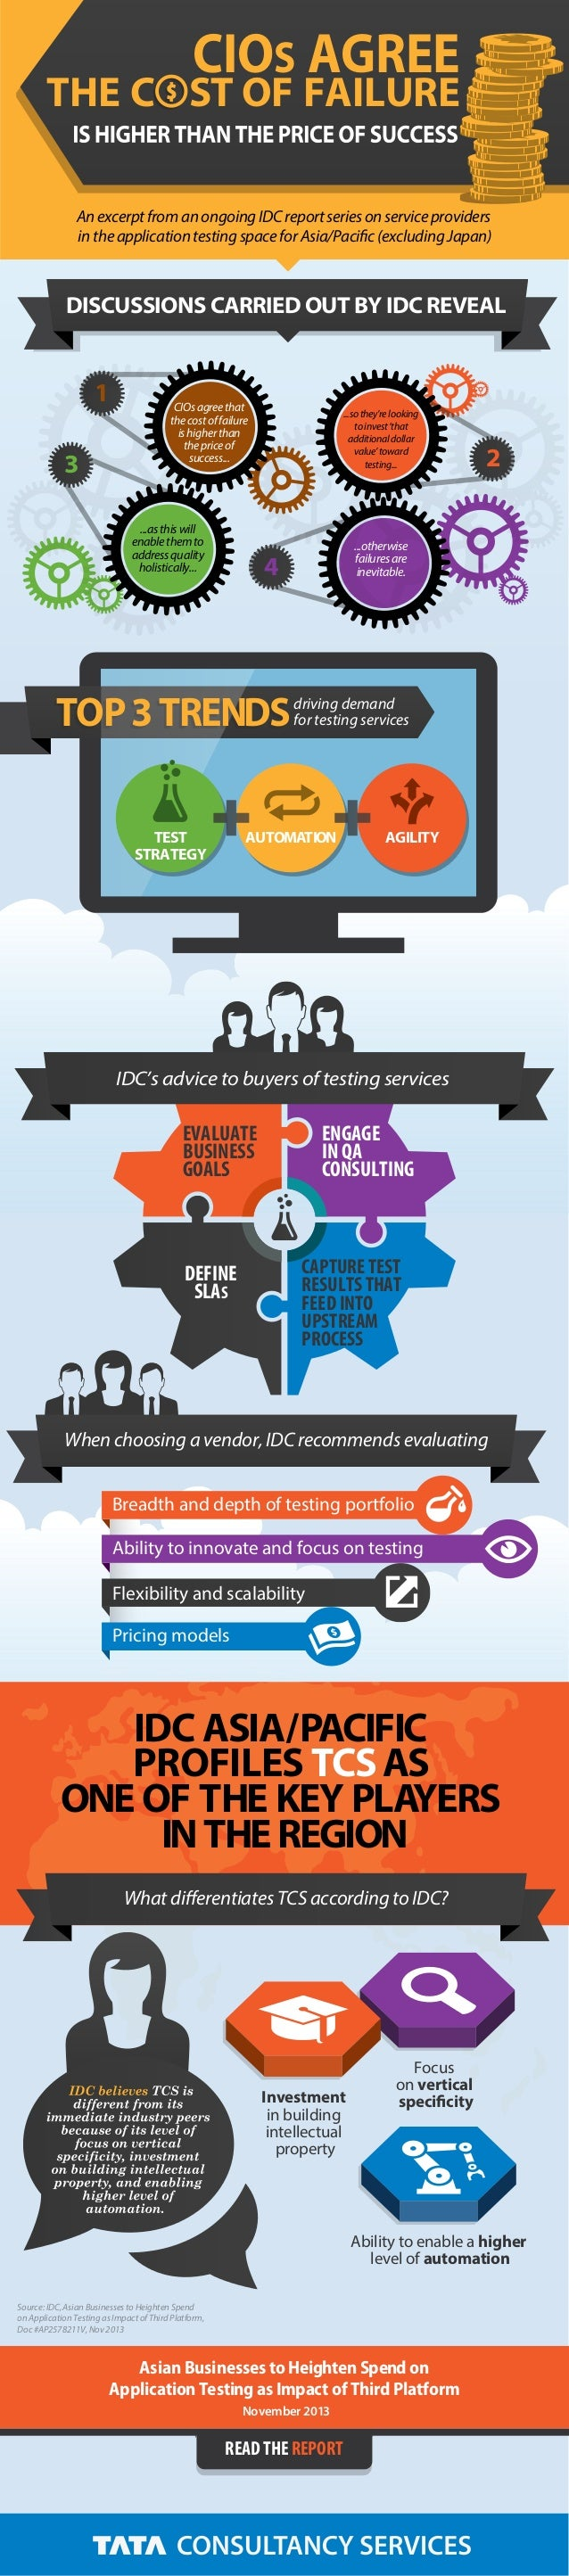 driving demand for testing servicesTOP3TRENDSTOP3TRENDS DISCUSSIONS CARRIED OUT BY IDC REVEAL CIOsagreethat thecostoffailu...